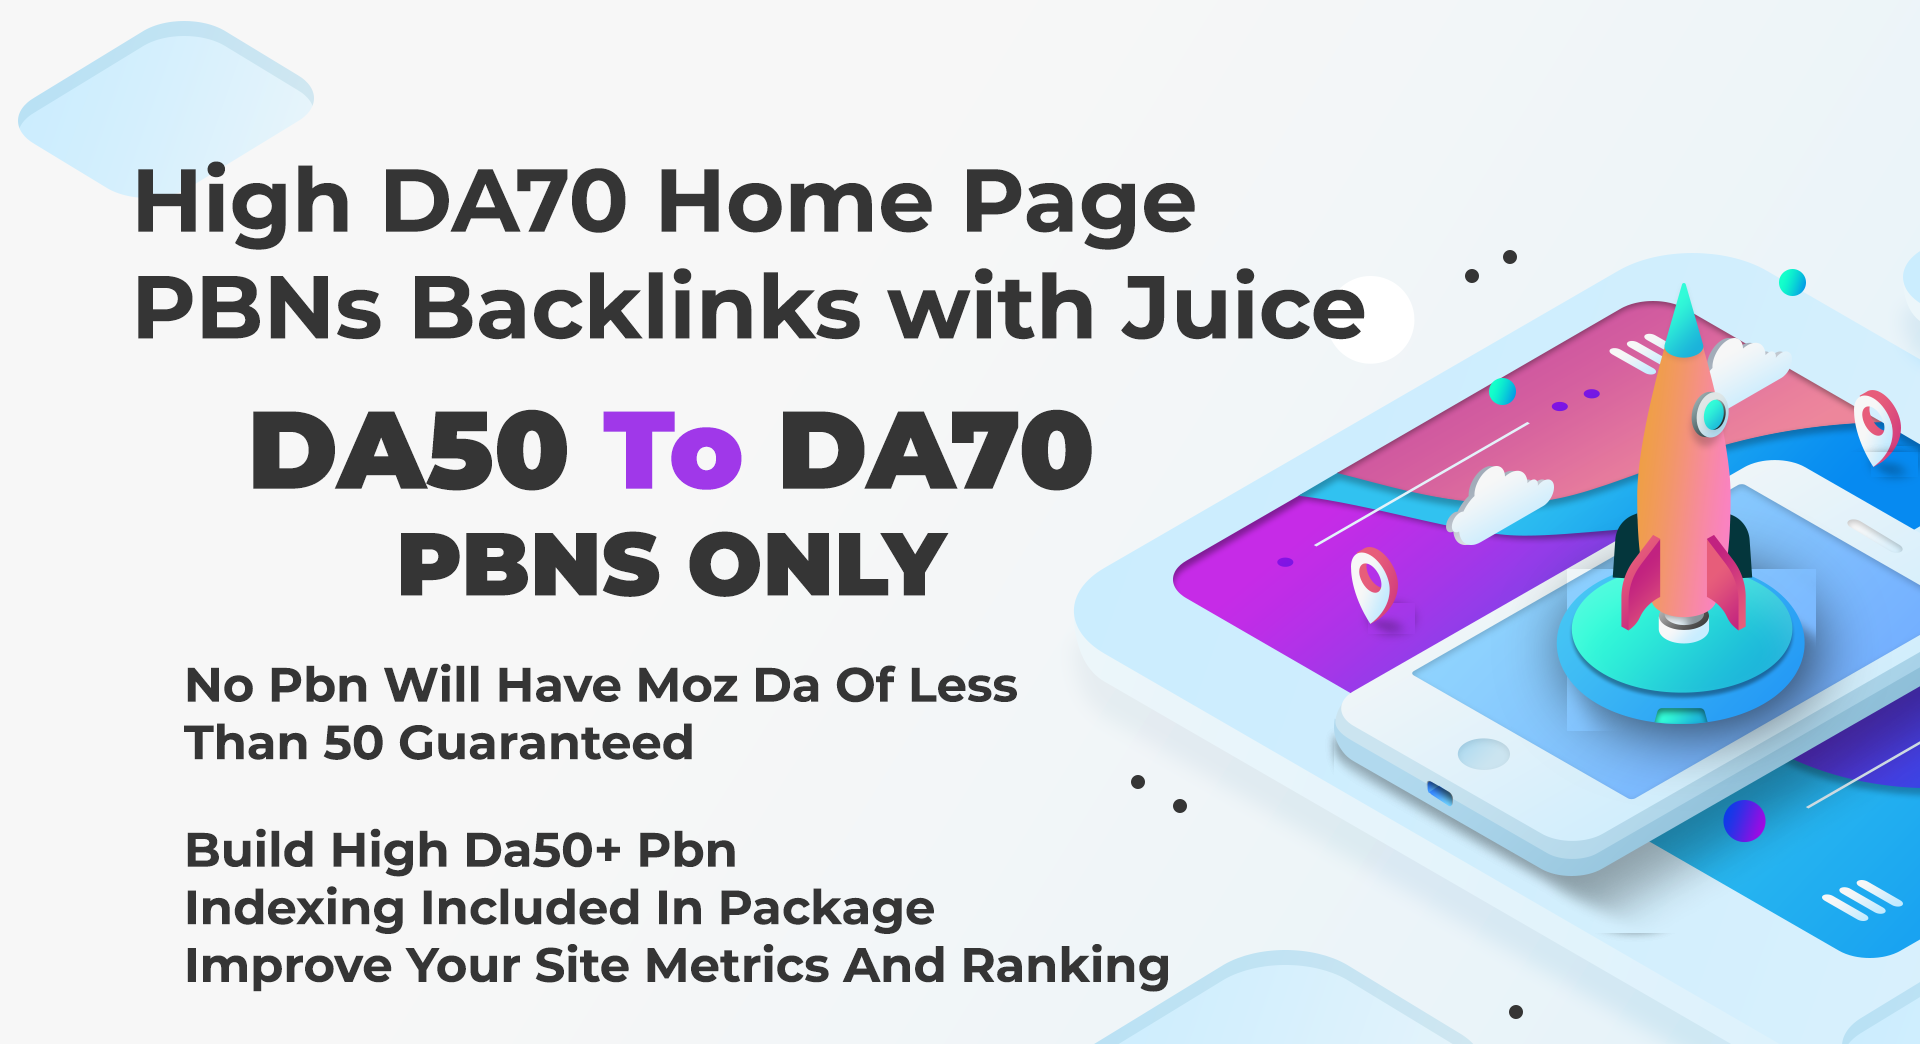 Create 7 DA50+ To DA80 Home Page Aged PBNs Backlinks - Improve Site Metrics With Ranking